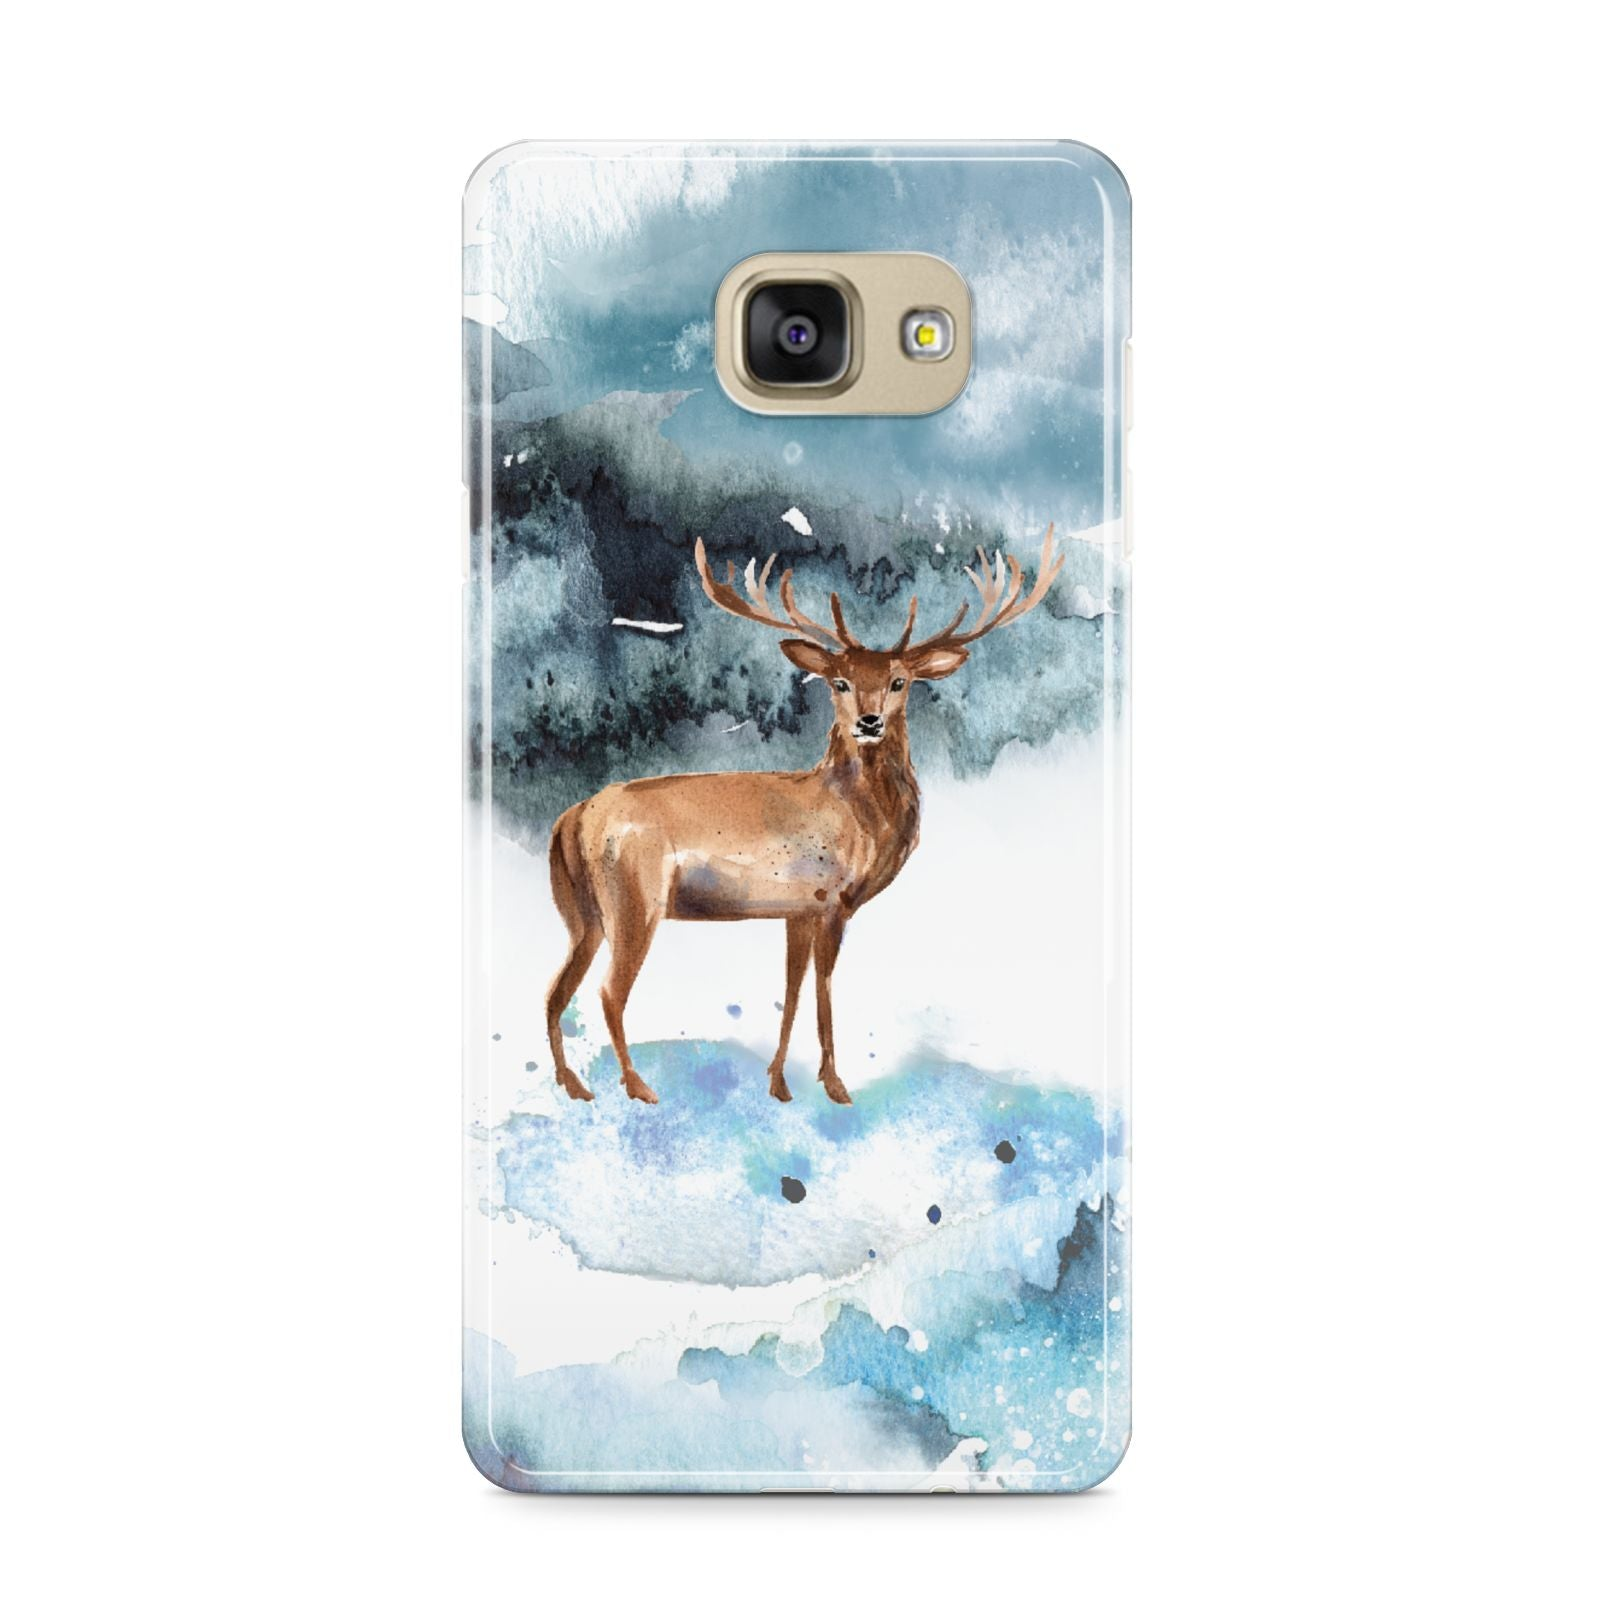 Christmas Winter Stag Samsung Galaxy A9 2016 Case on gold phone